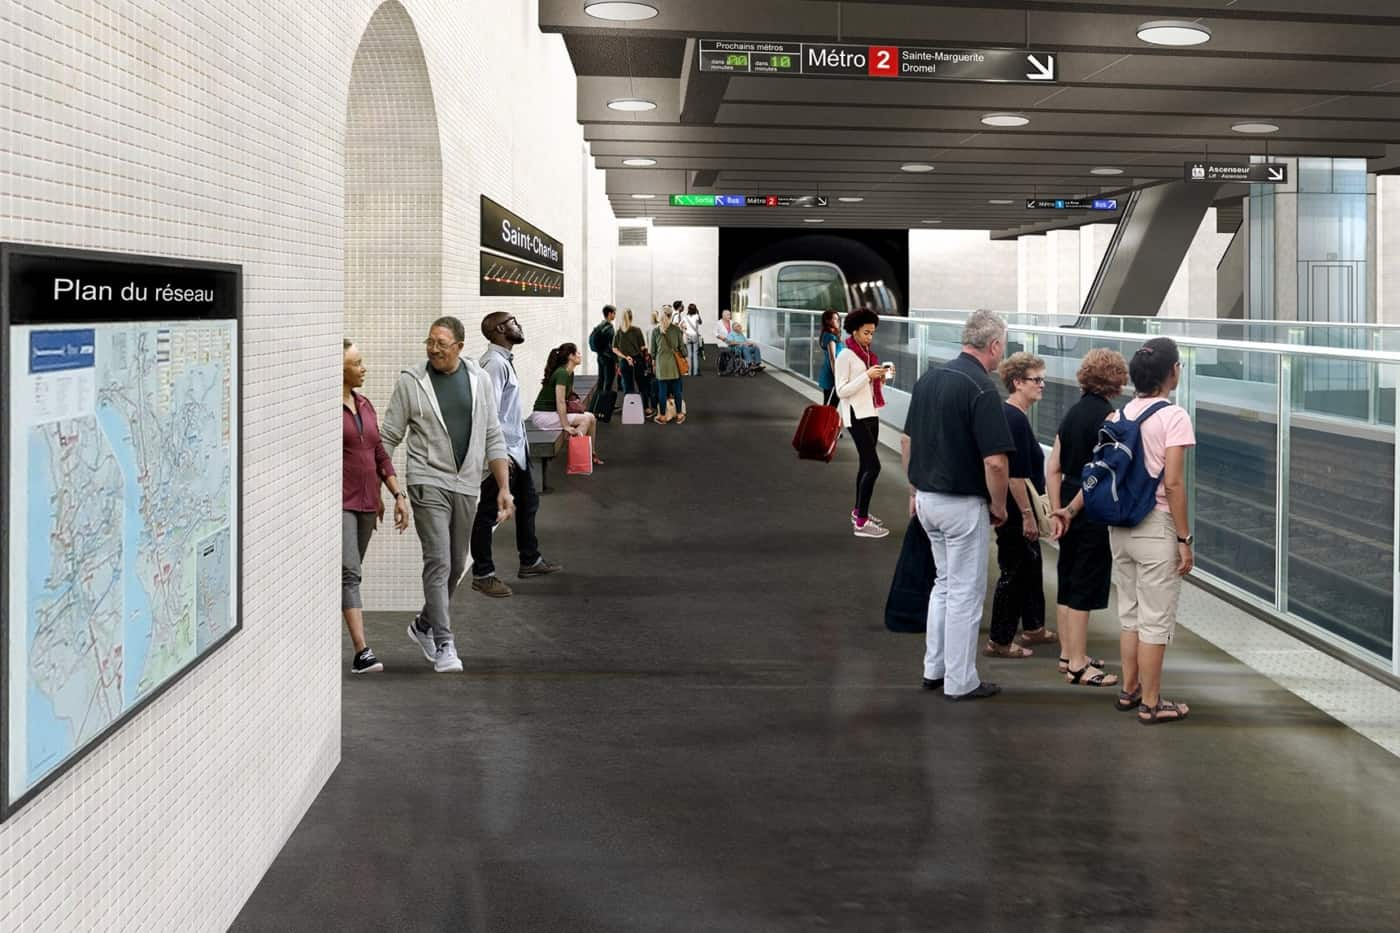 , Le nouveau métro automatique de Marseille se dévoile en images, Made in Marseille, Made in Marseille